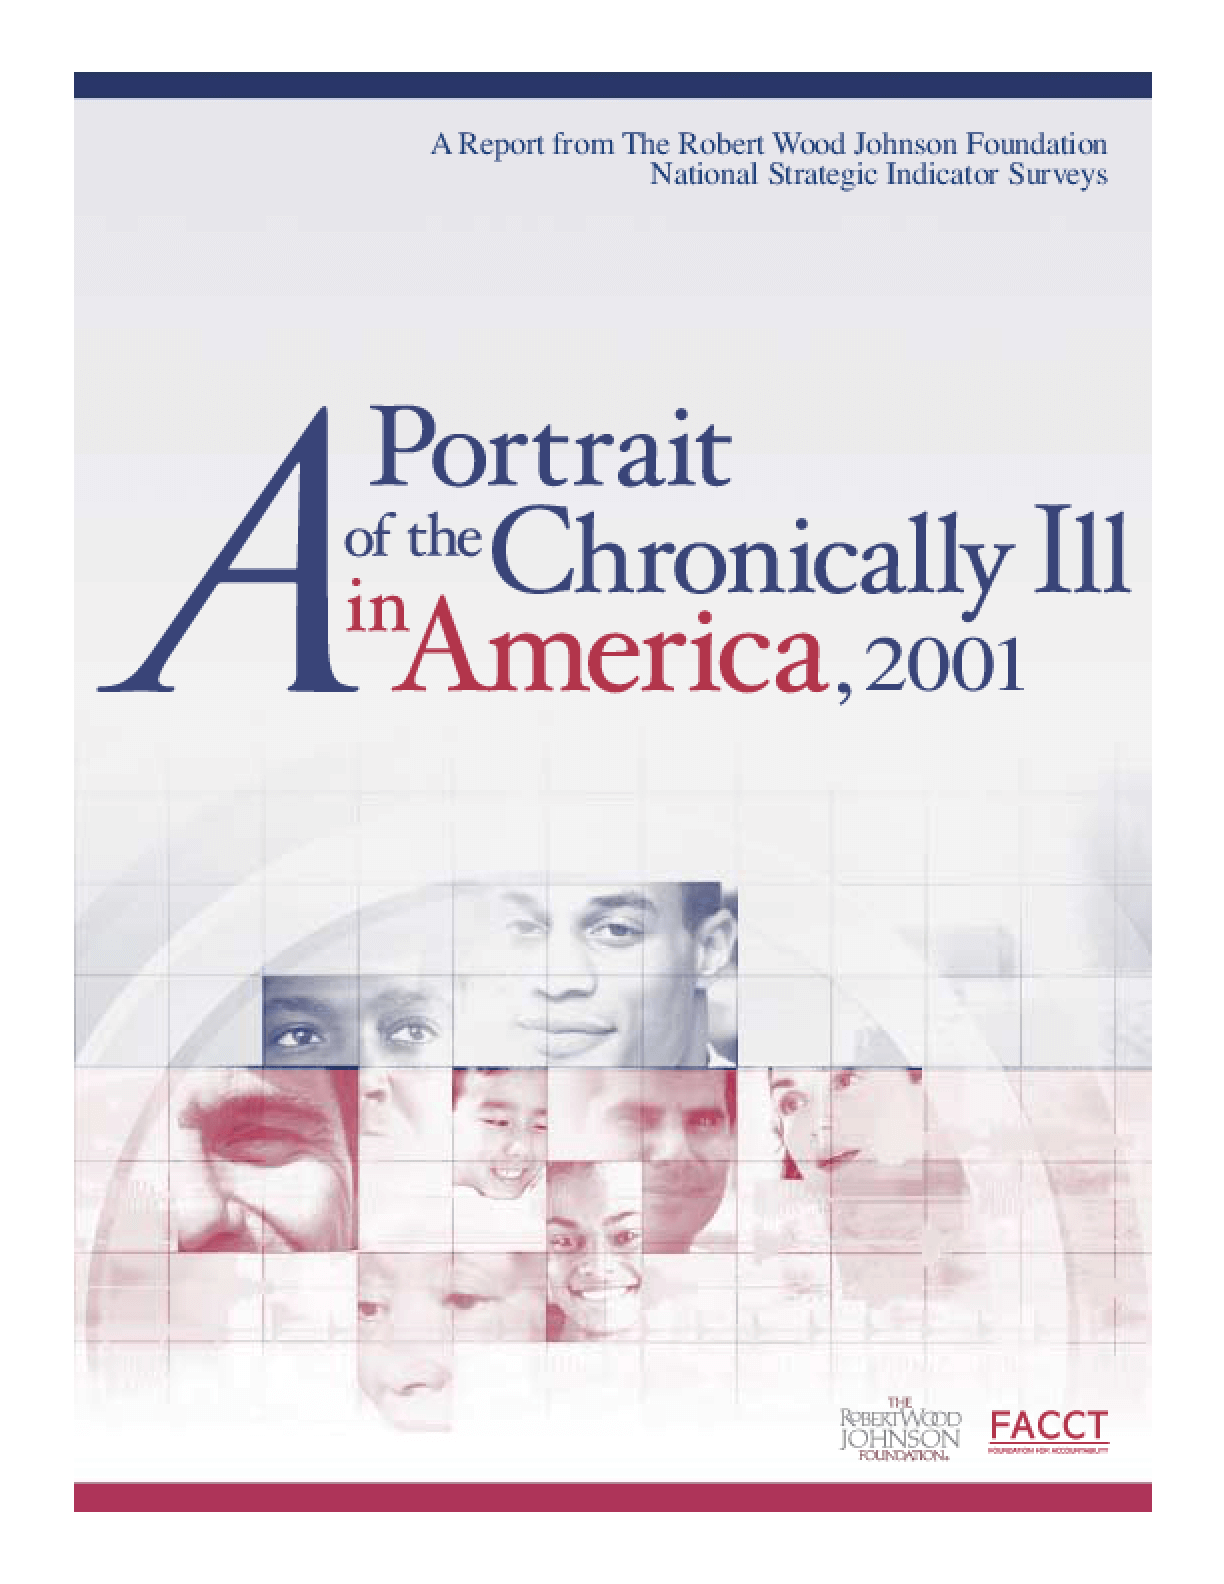 A Portrait of the Chronically Ill in America, 2001